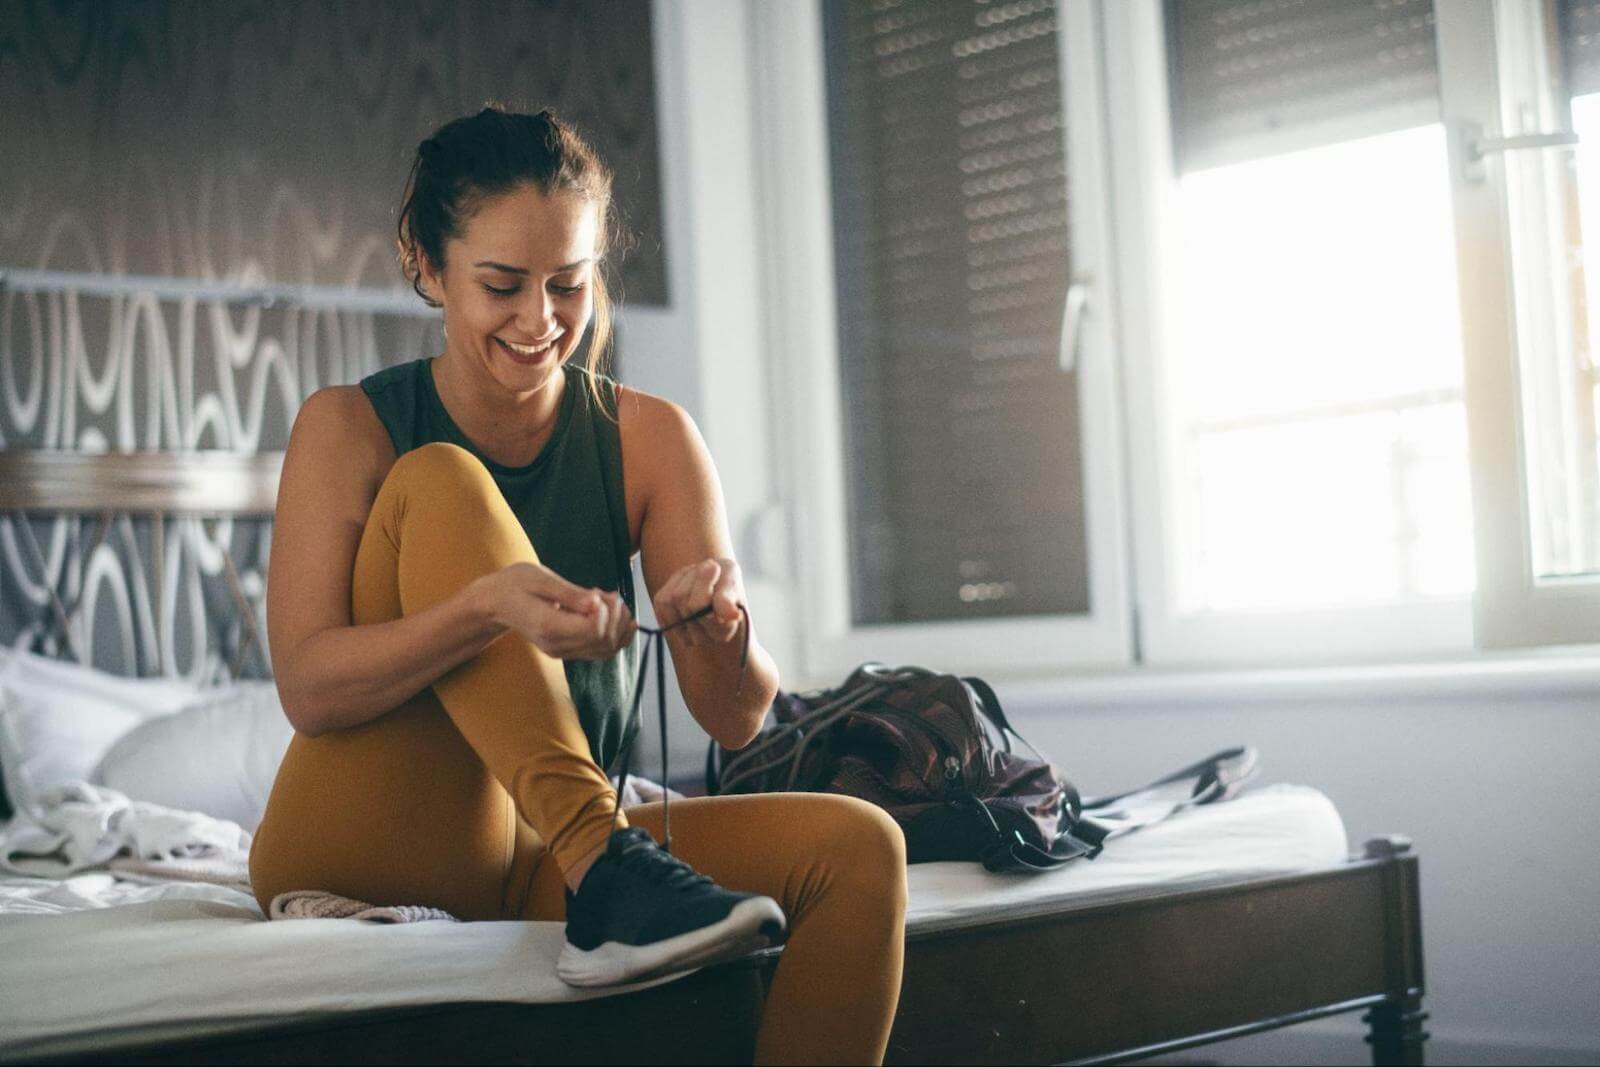 How to reset your metabolism: A woman ties her shoes before a workout